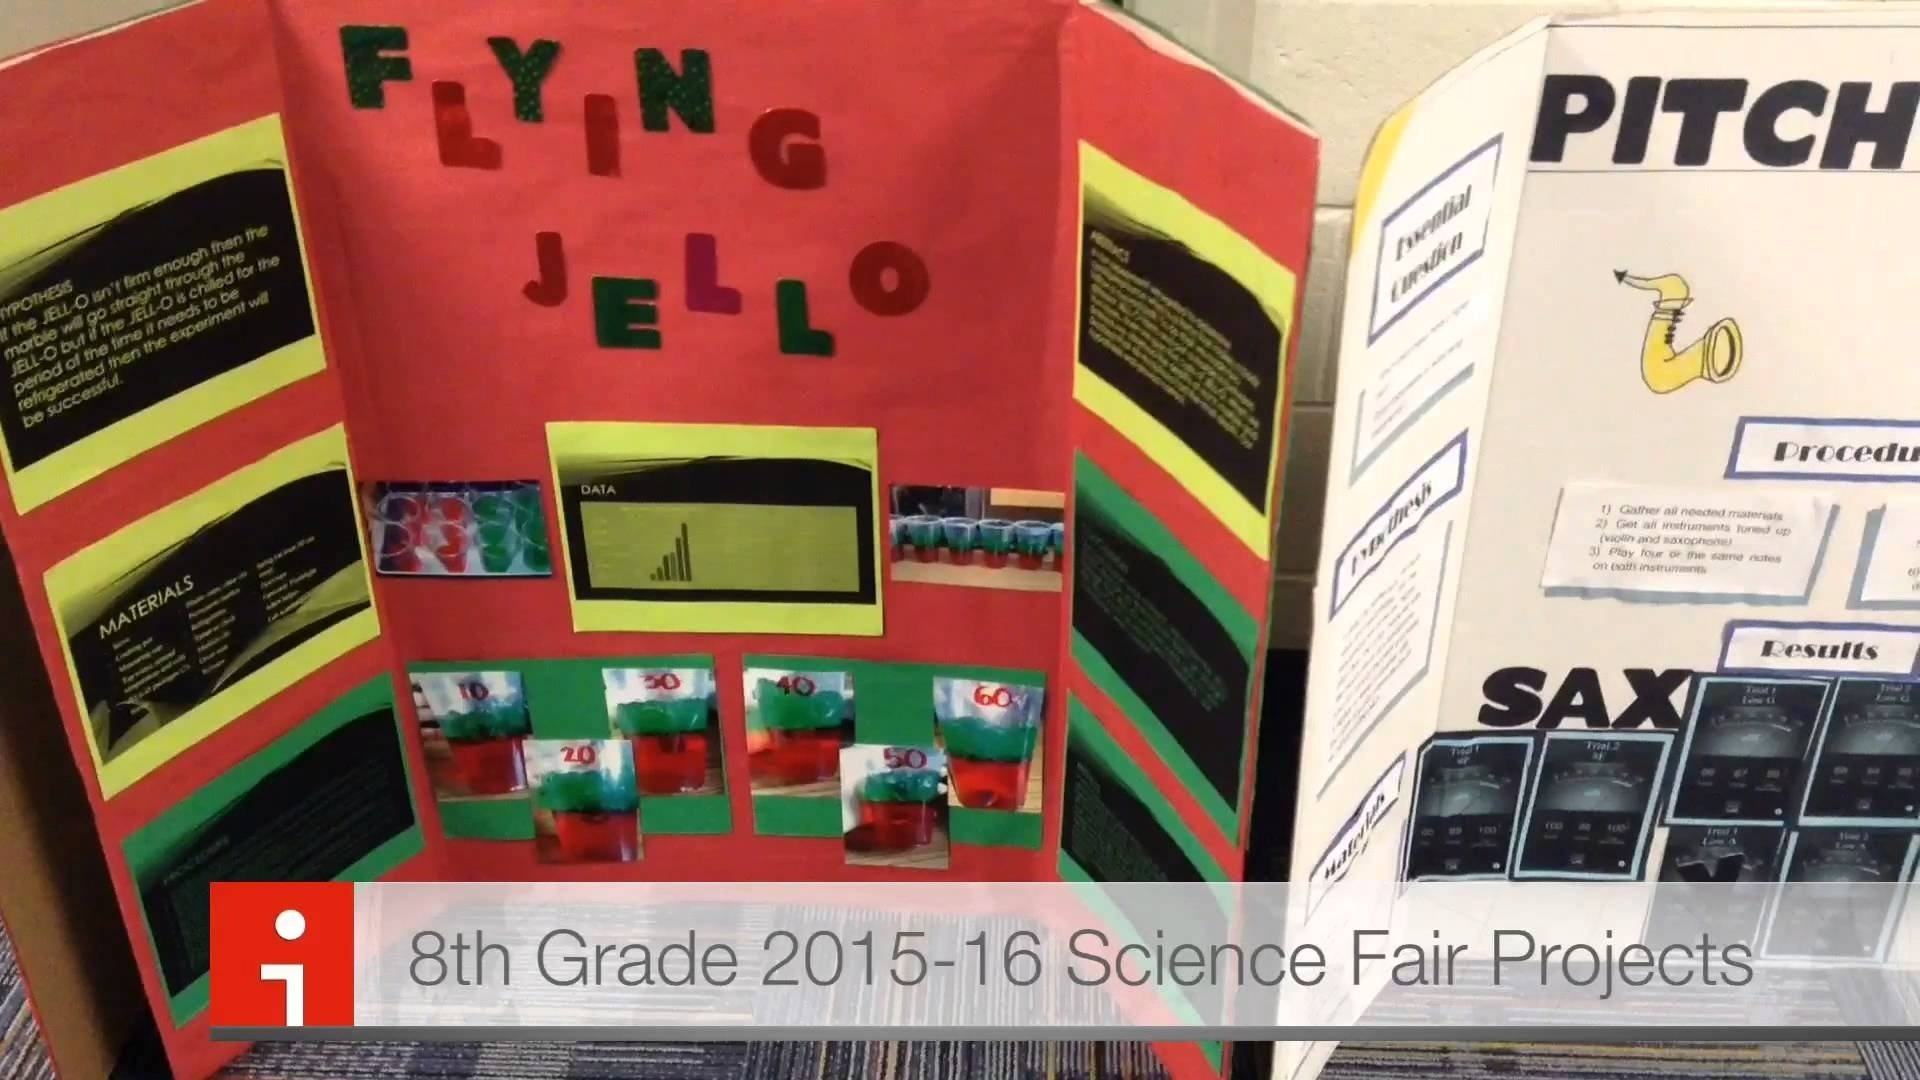 10 Ideal Science Fair Projects Ideas For 8Th Grade 2015 16 8th grade science fair projects youtube 4 2020